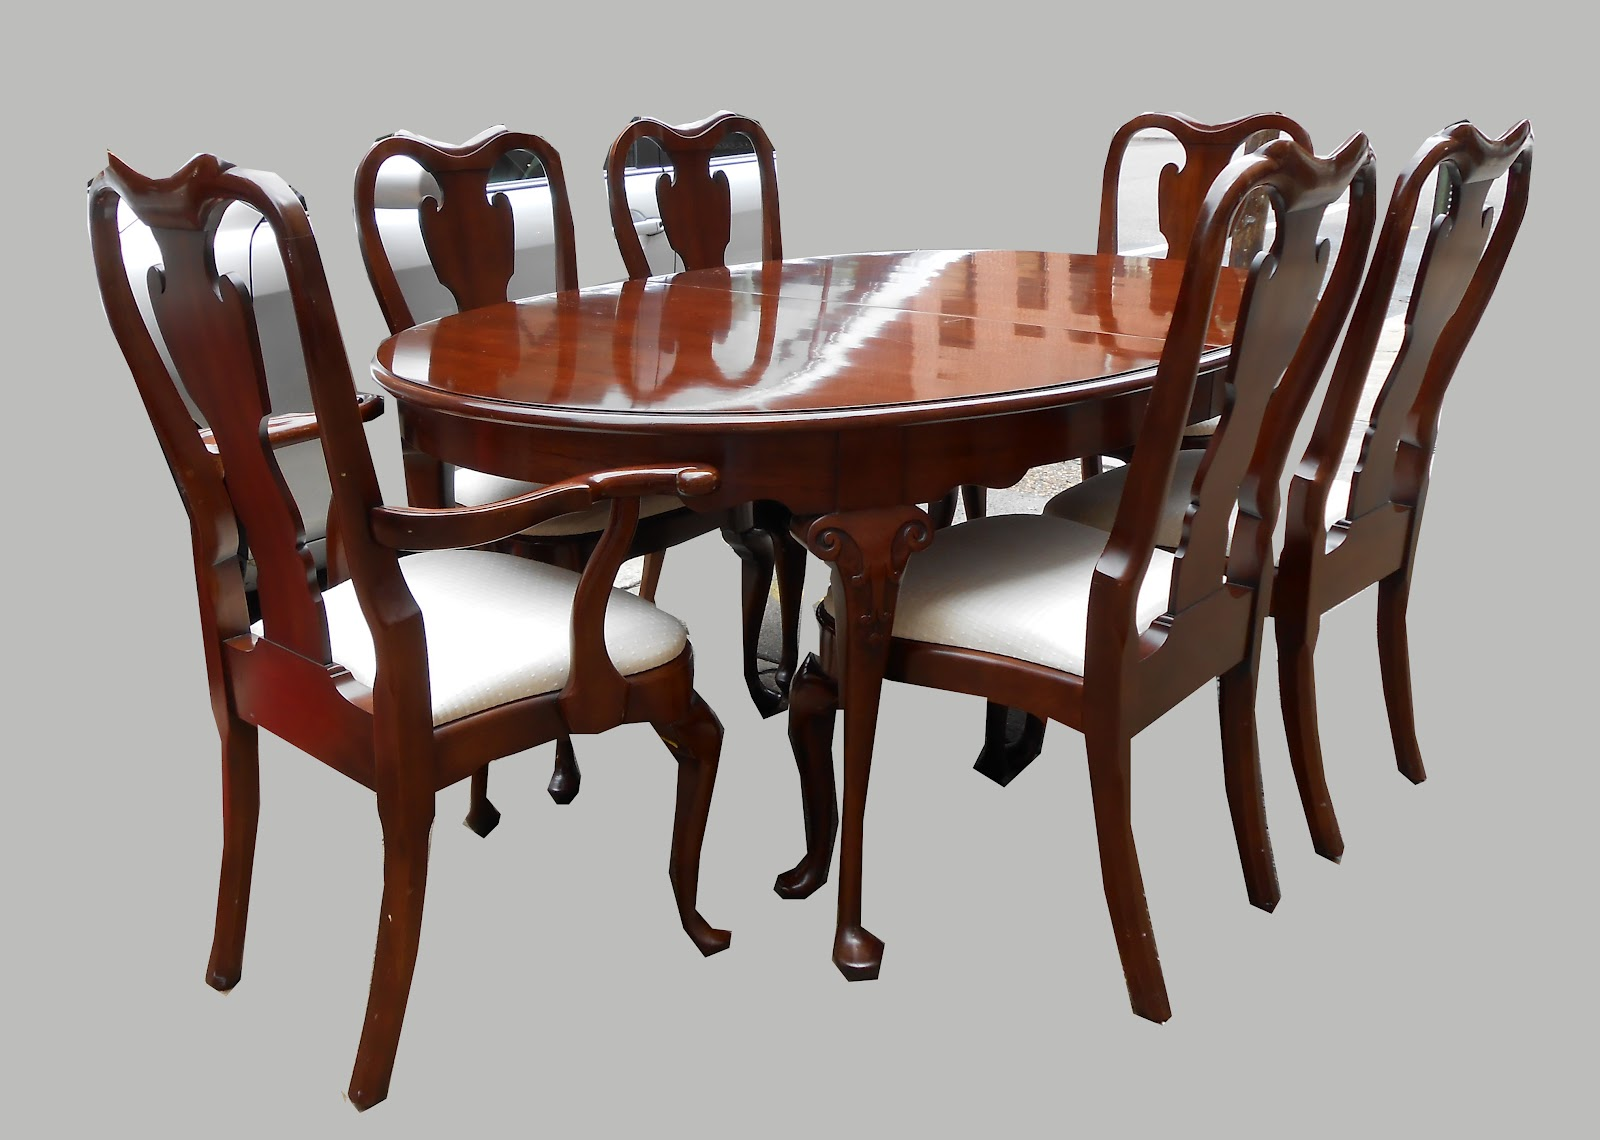 Queen Anne Style Dining Table 6 Chairs Sold